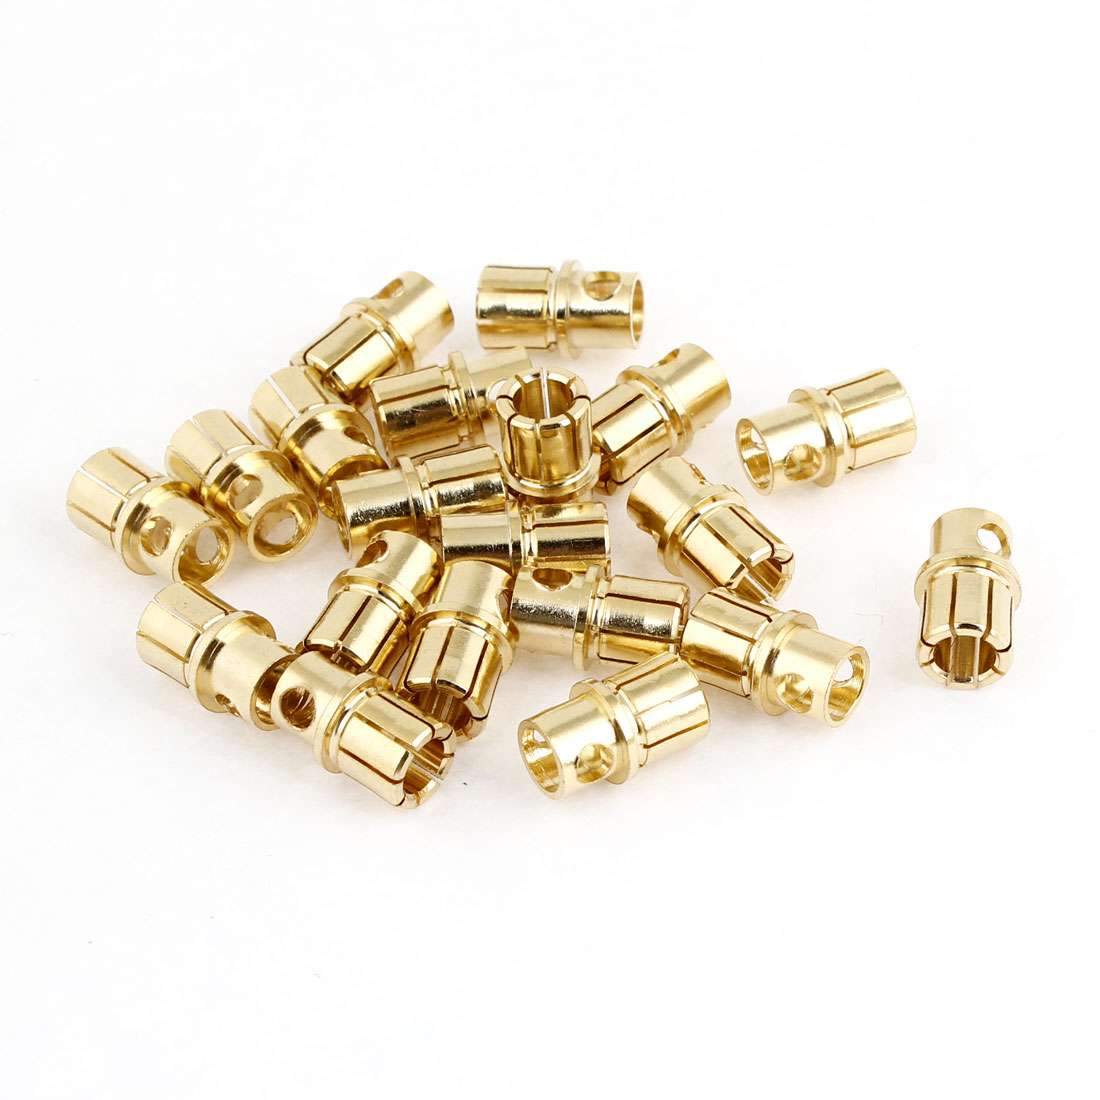 20 Pcs BY502 8mm Outer Dia Male Banana Connector Replacement